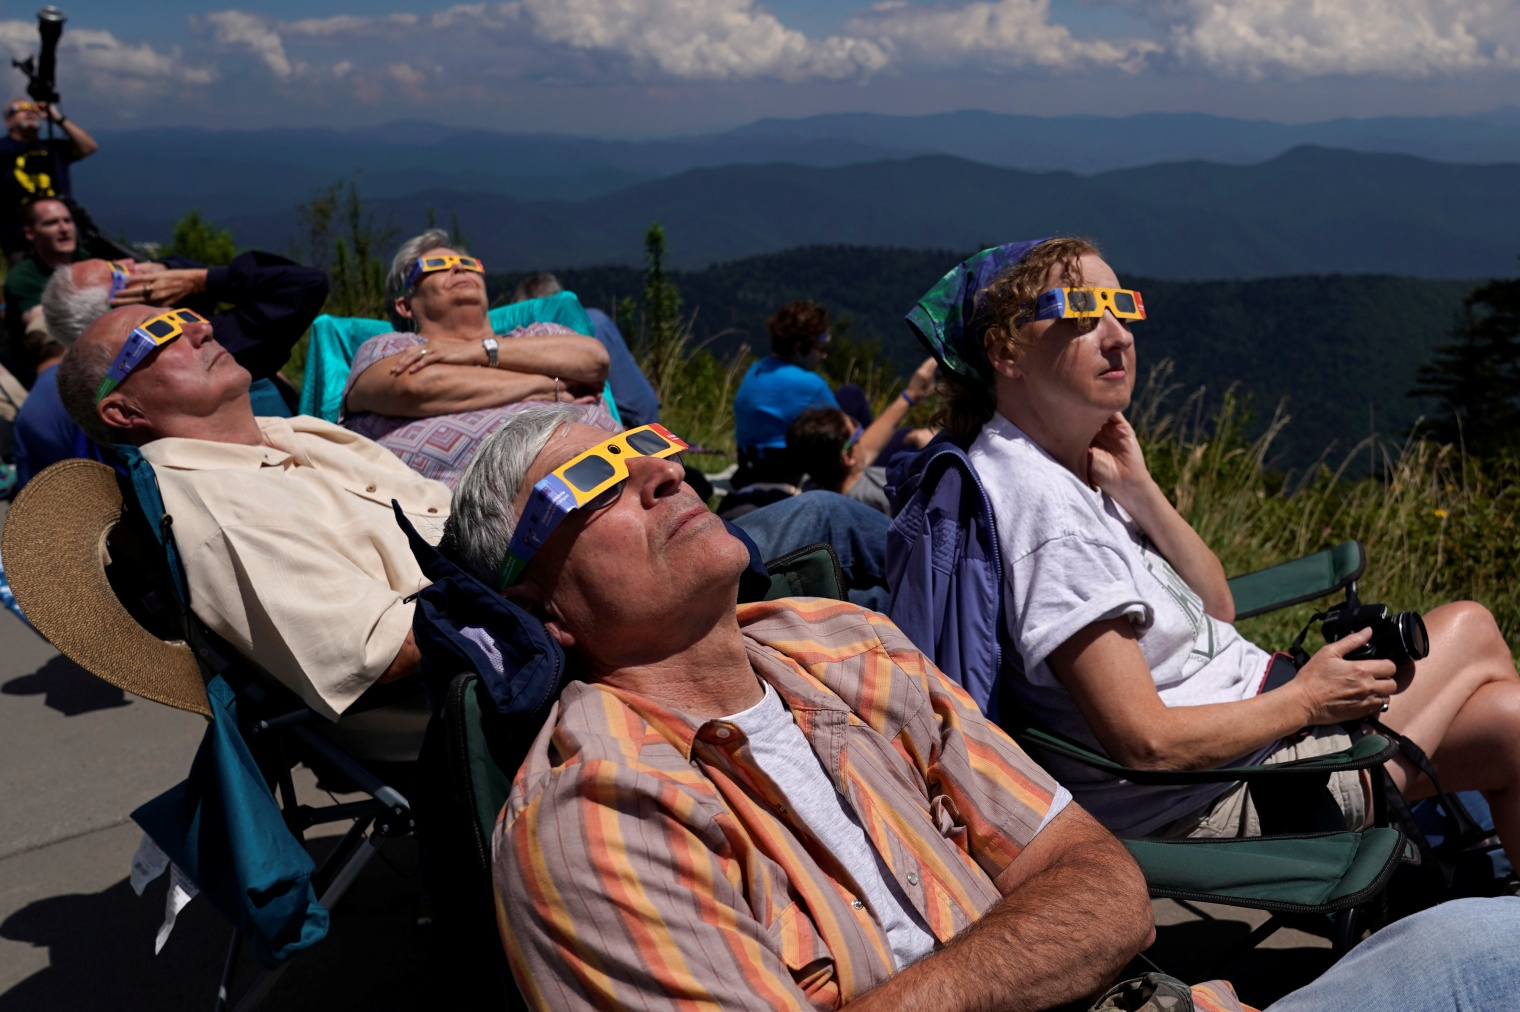 People watch as the solar eclipse approaches totality from Clingmans Dome, which at 6,643 feet (2,025m) is the highest point in the Great Smoky Mountains National Park, Tennessee on Aug. 21, 2017.